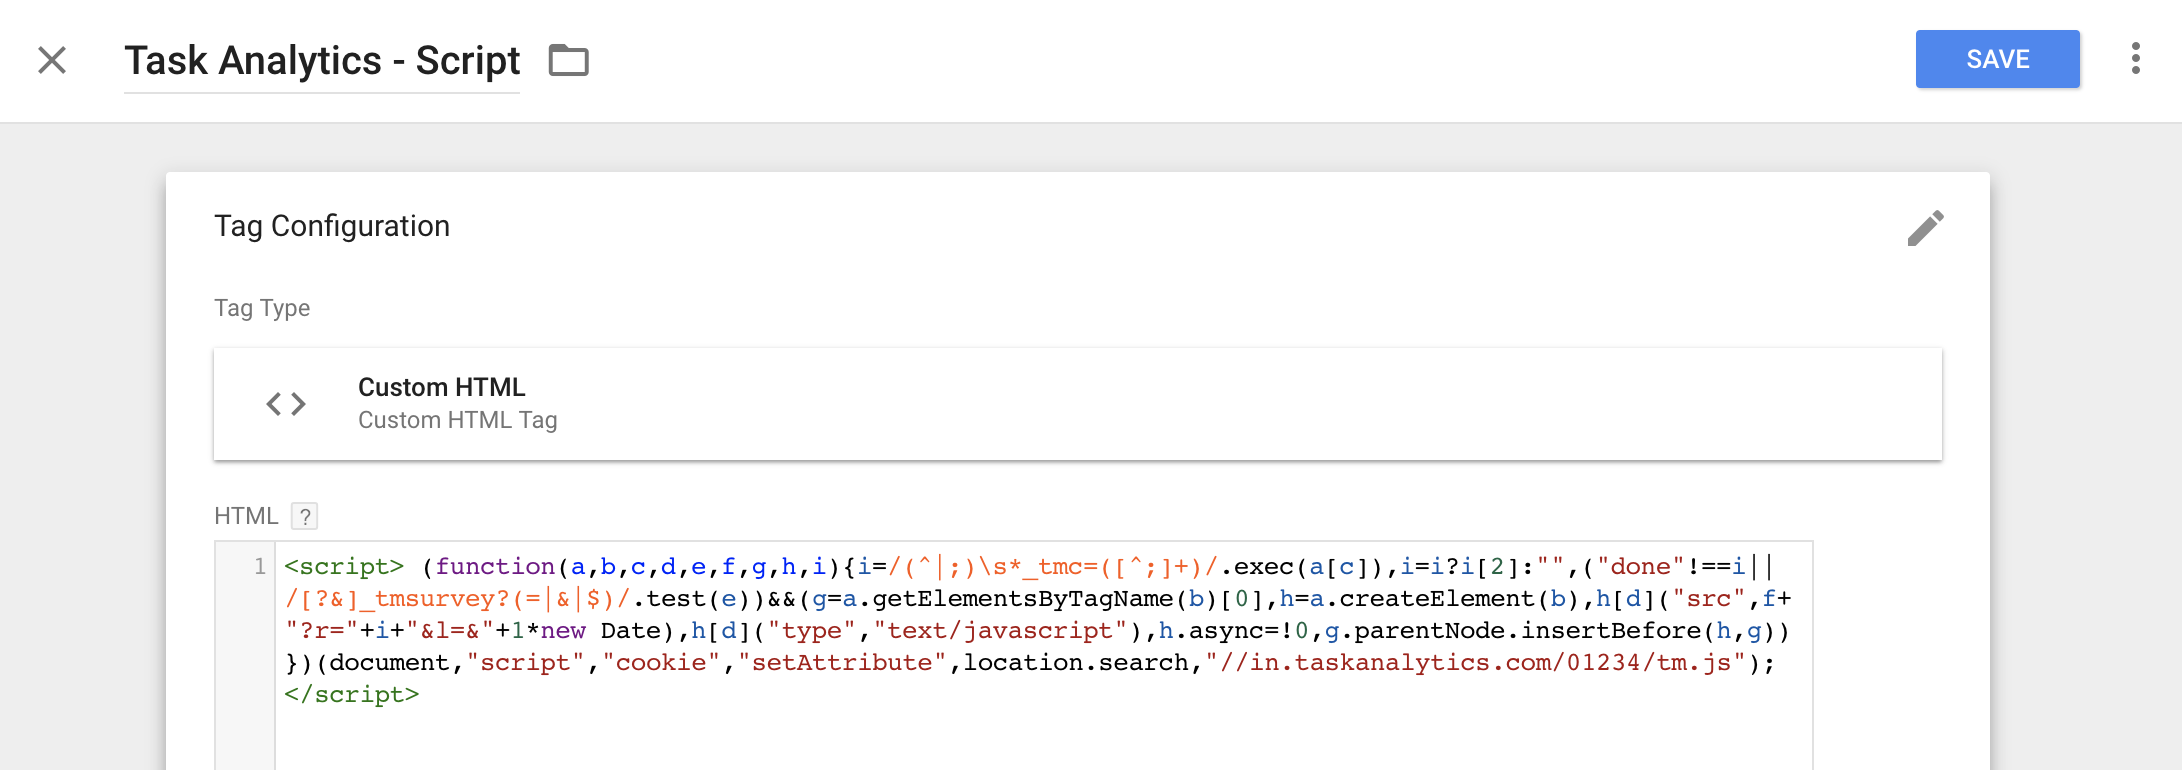 Custom HTML tag in Google Tag Manager with Task Analytics code inside